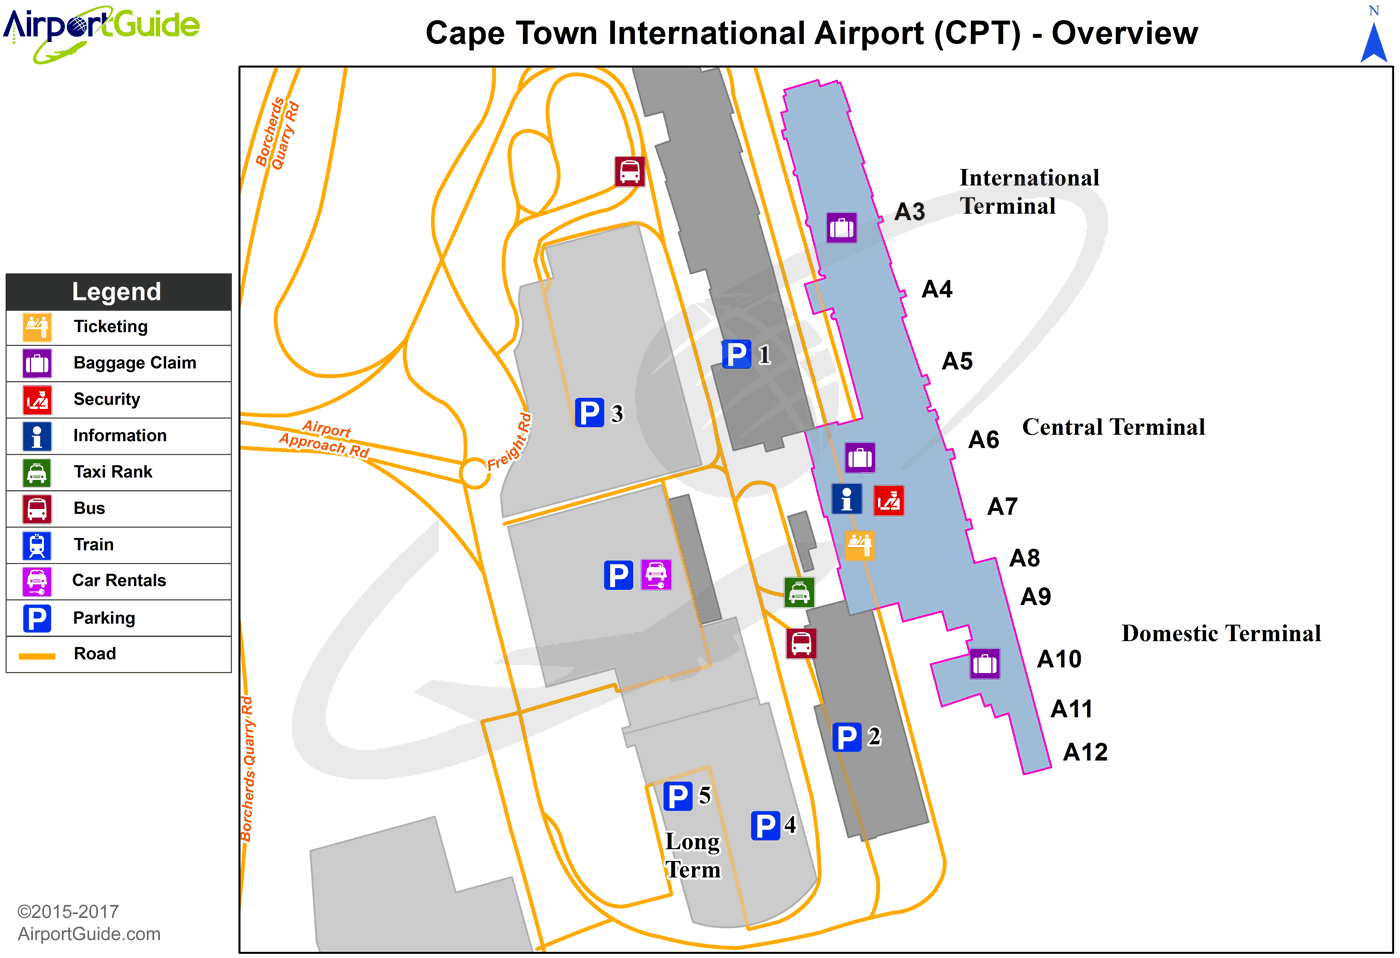 Cape Town Cape Town International Cpt Airport Terminal Map Overview Airport Map Airport Guide Airport Design